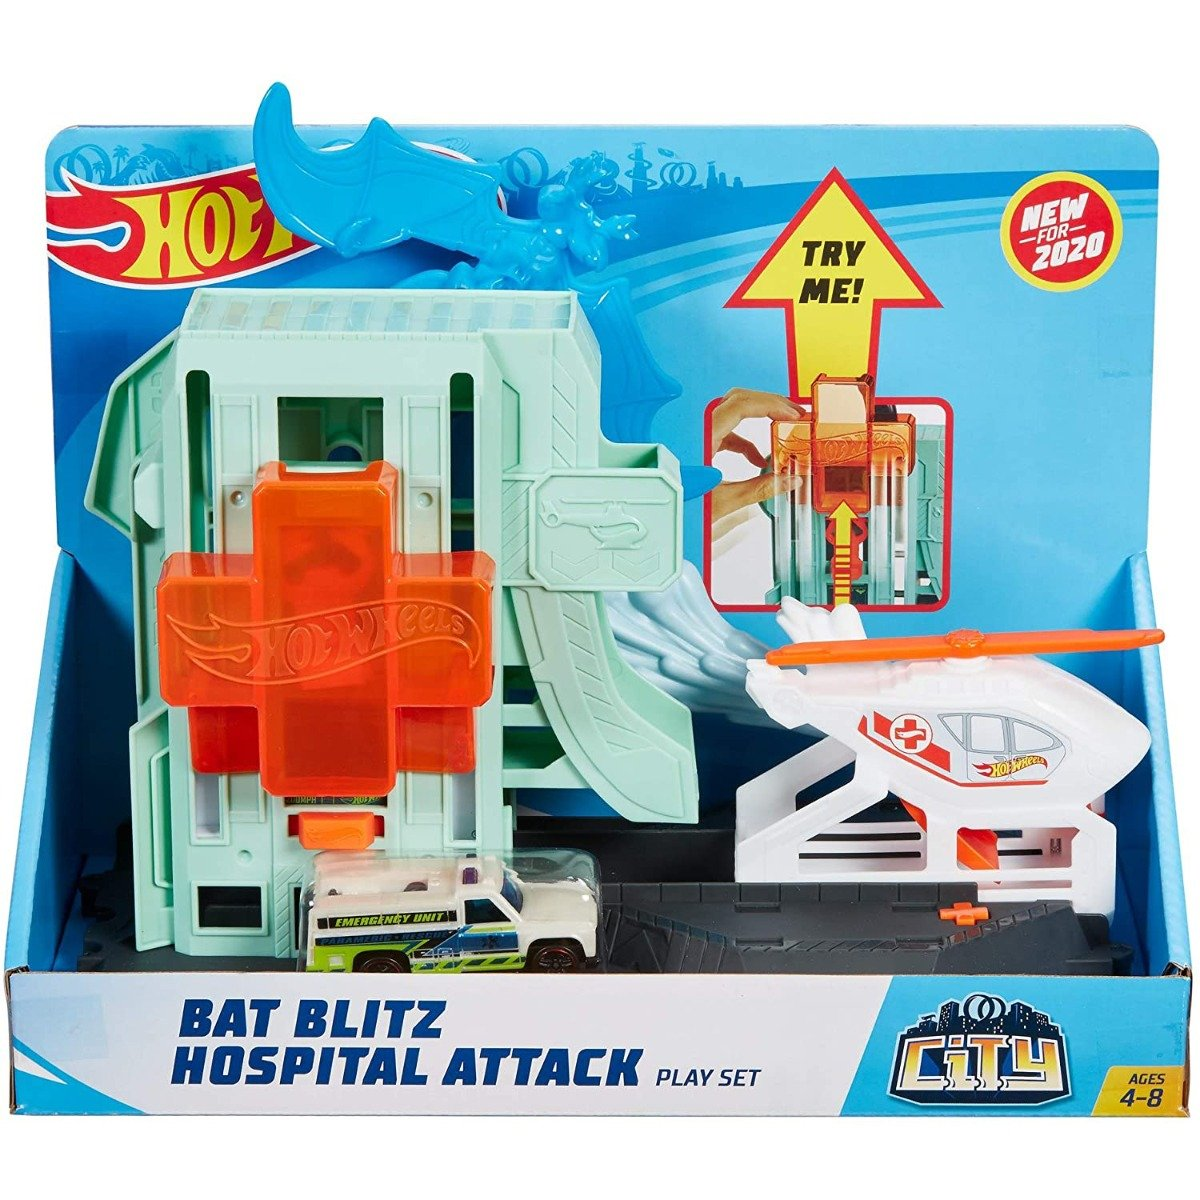 Set de joaca Circuit cu obstacole Hot Wheels City, Bat Blitz Hospital Attack (GJK90)